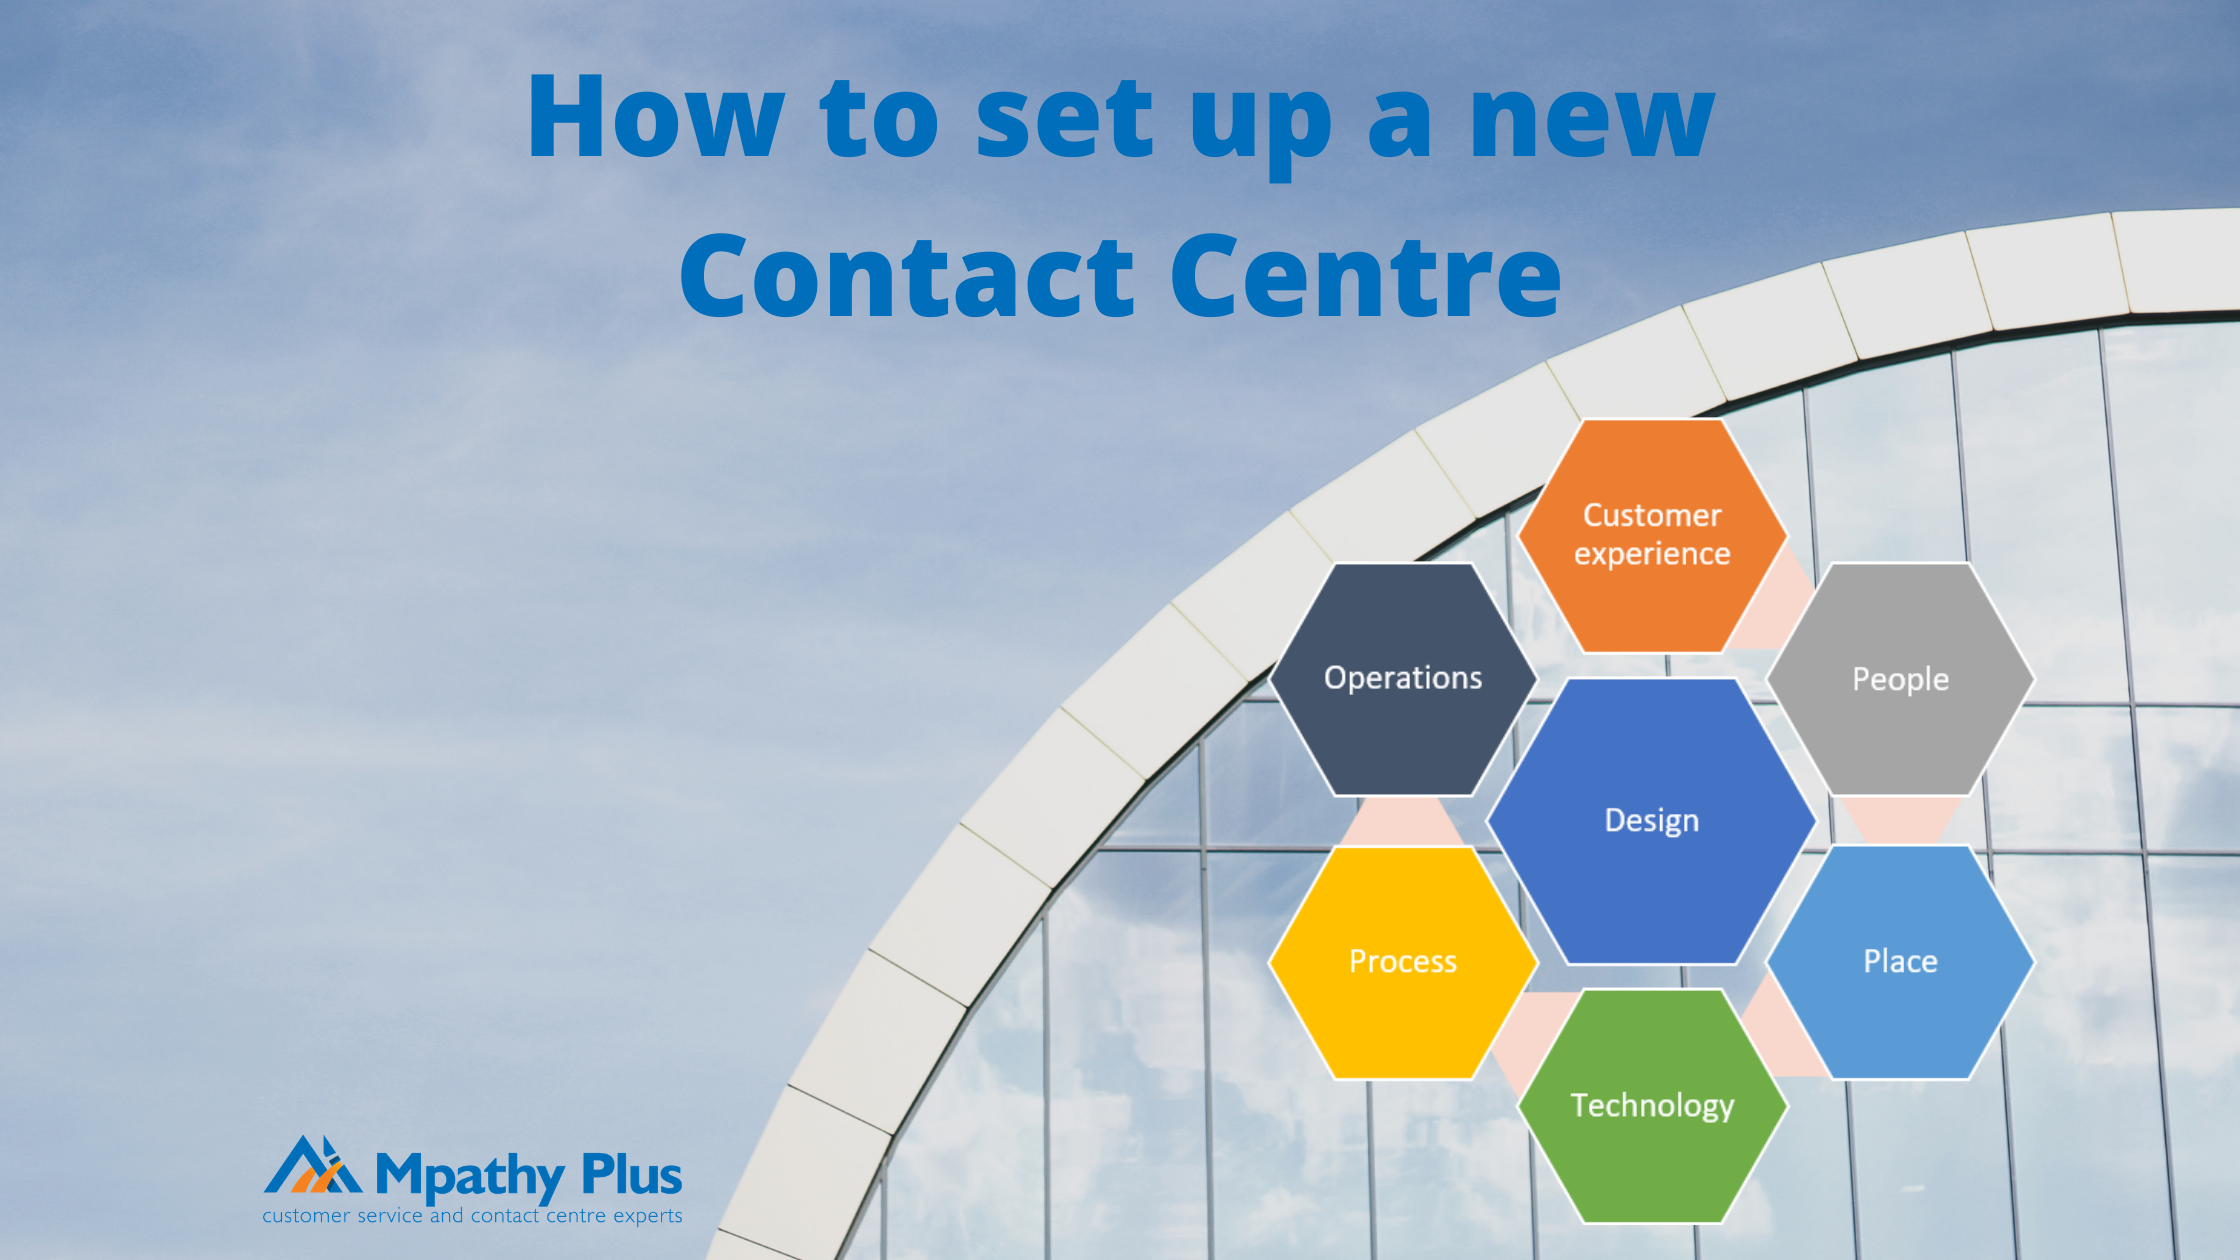 How do you set up a new Contact Centre?